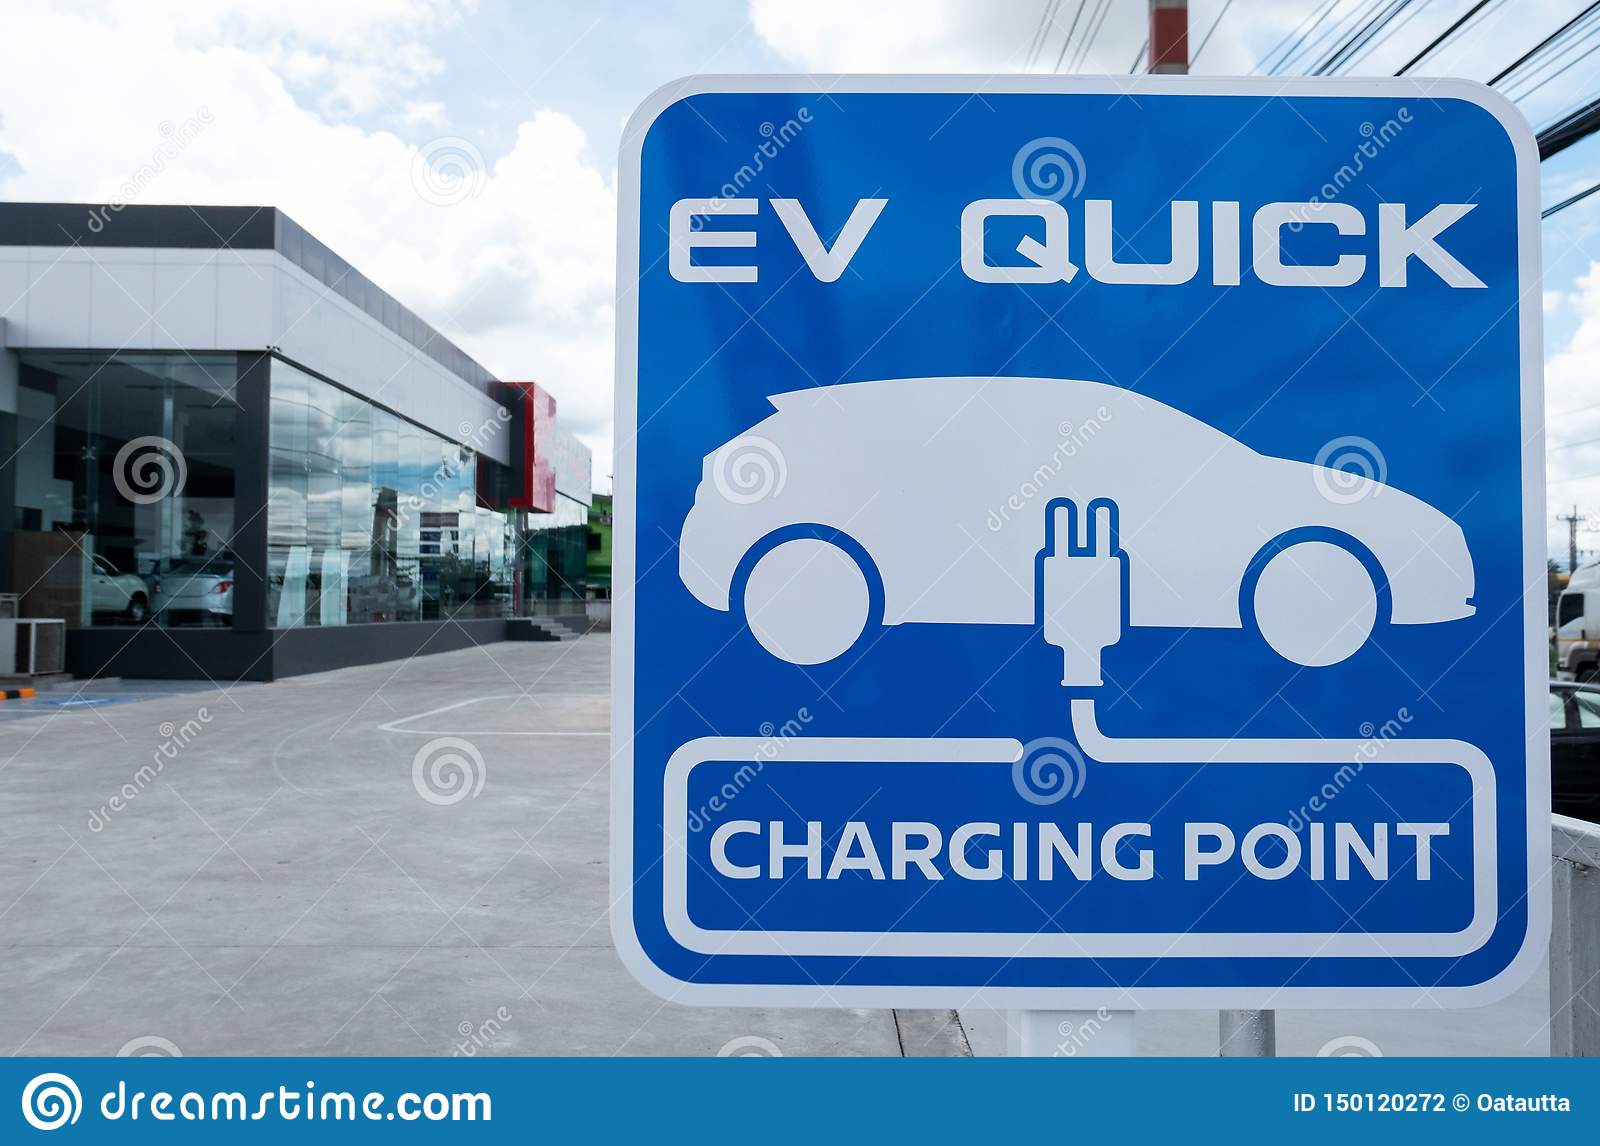 Charging station for electric vehicle.outdoor car parking . blue sign EV quick charging point